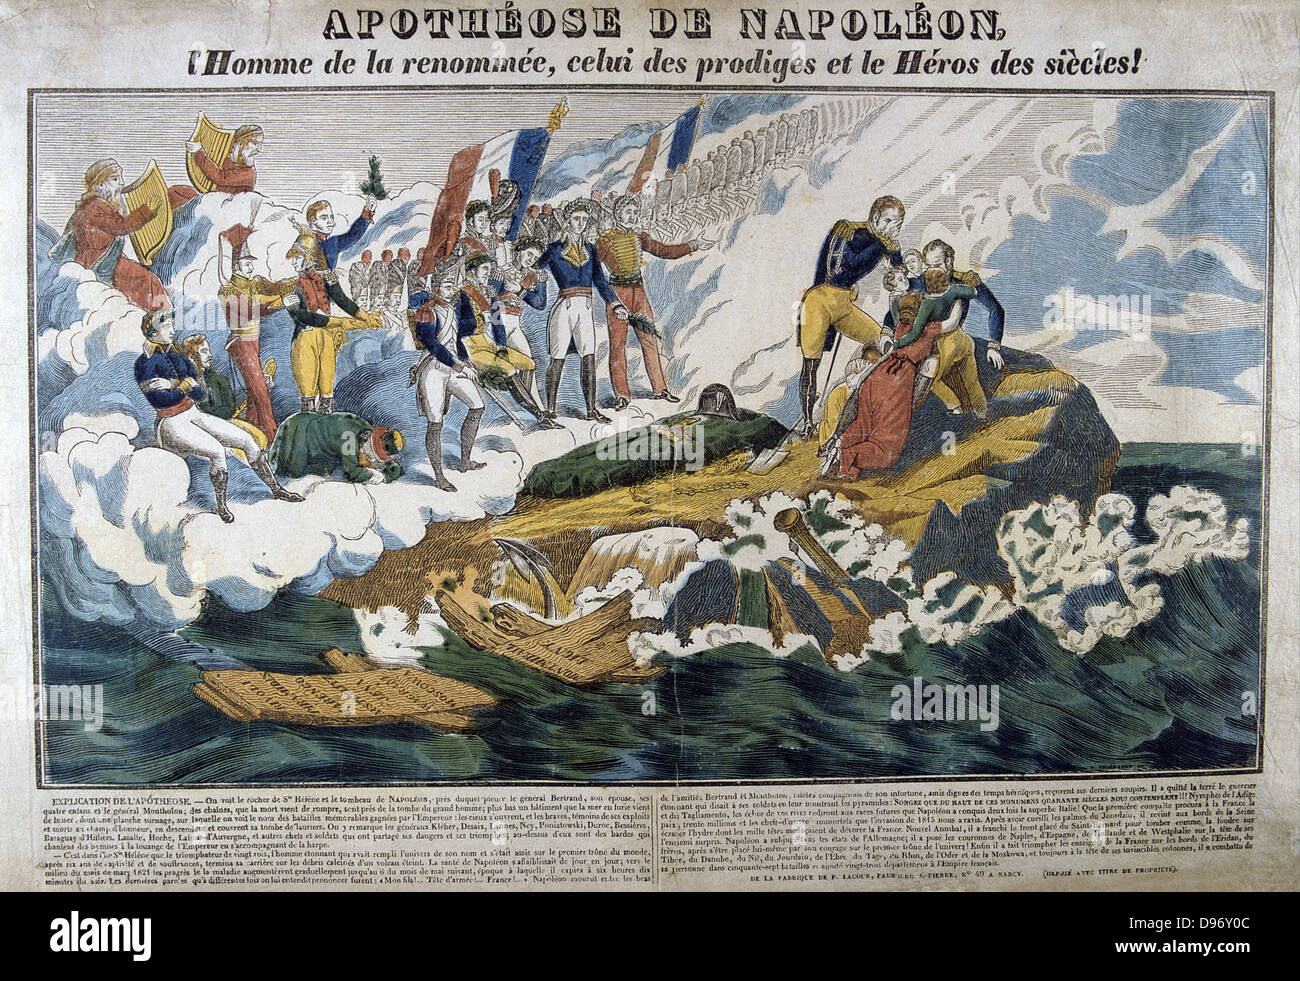 Allegorical print of the apotheosis of Napoleon I (1769-1821). Hand-coloured woodcut. - Stock Image